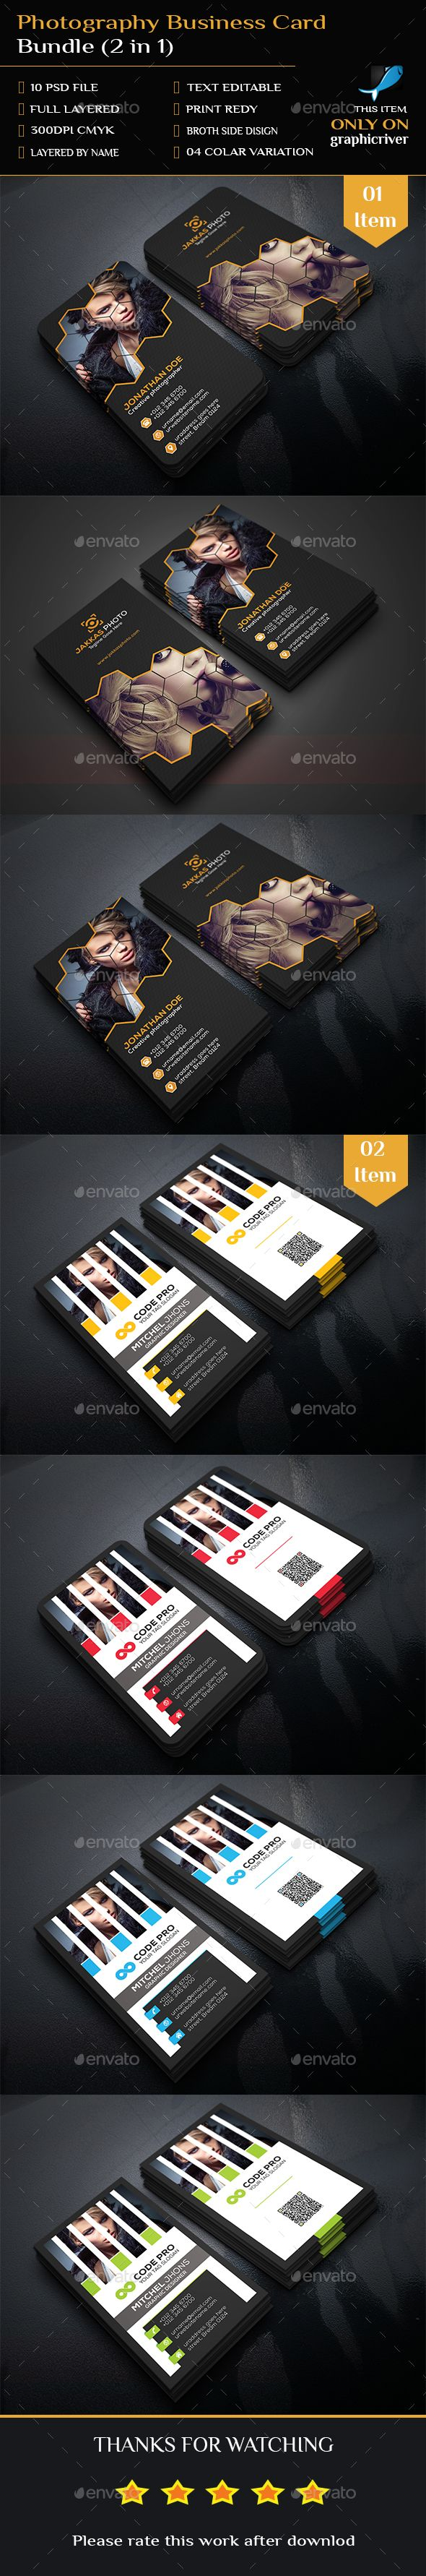 250 best photography business card design images on pinterest